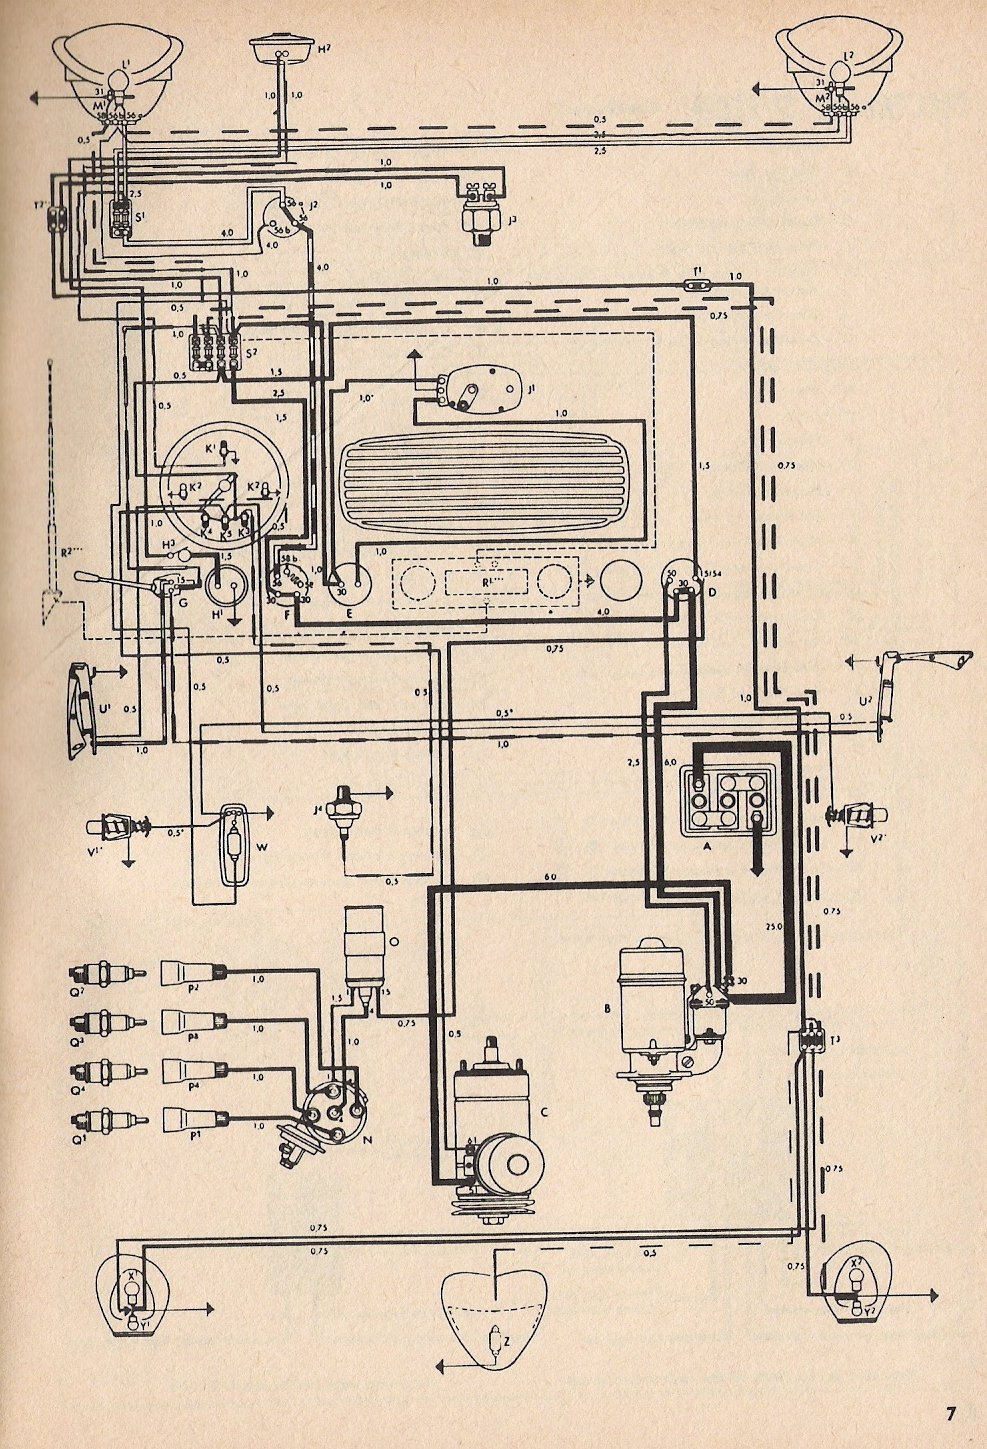 bug_54 thesamba com type 1 wiring diagrams 1971 vw bus wiring diagram at mifinder.co